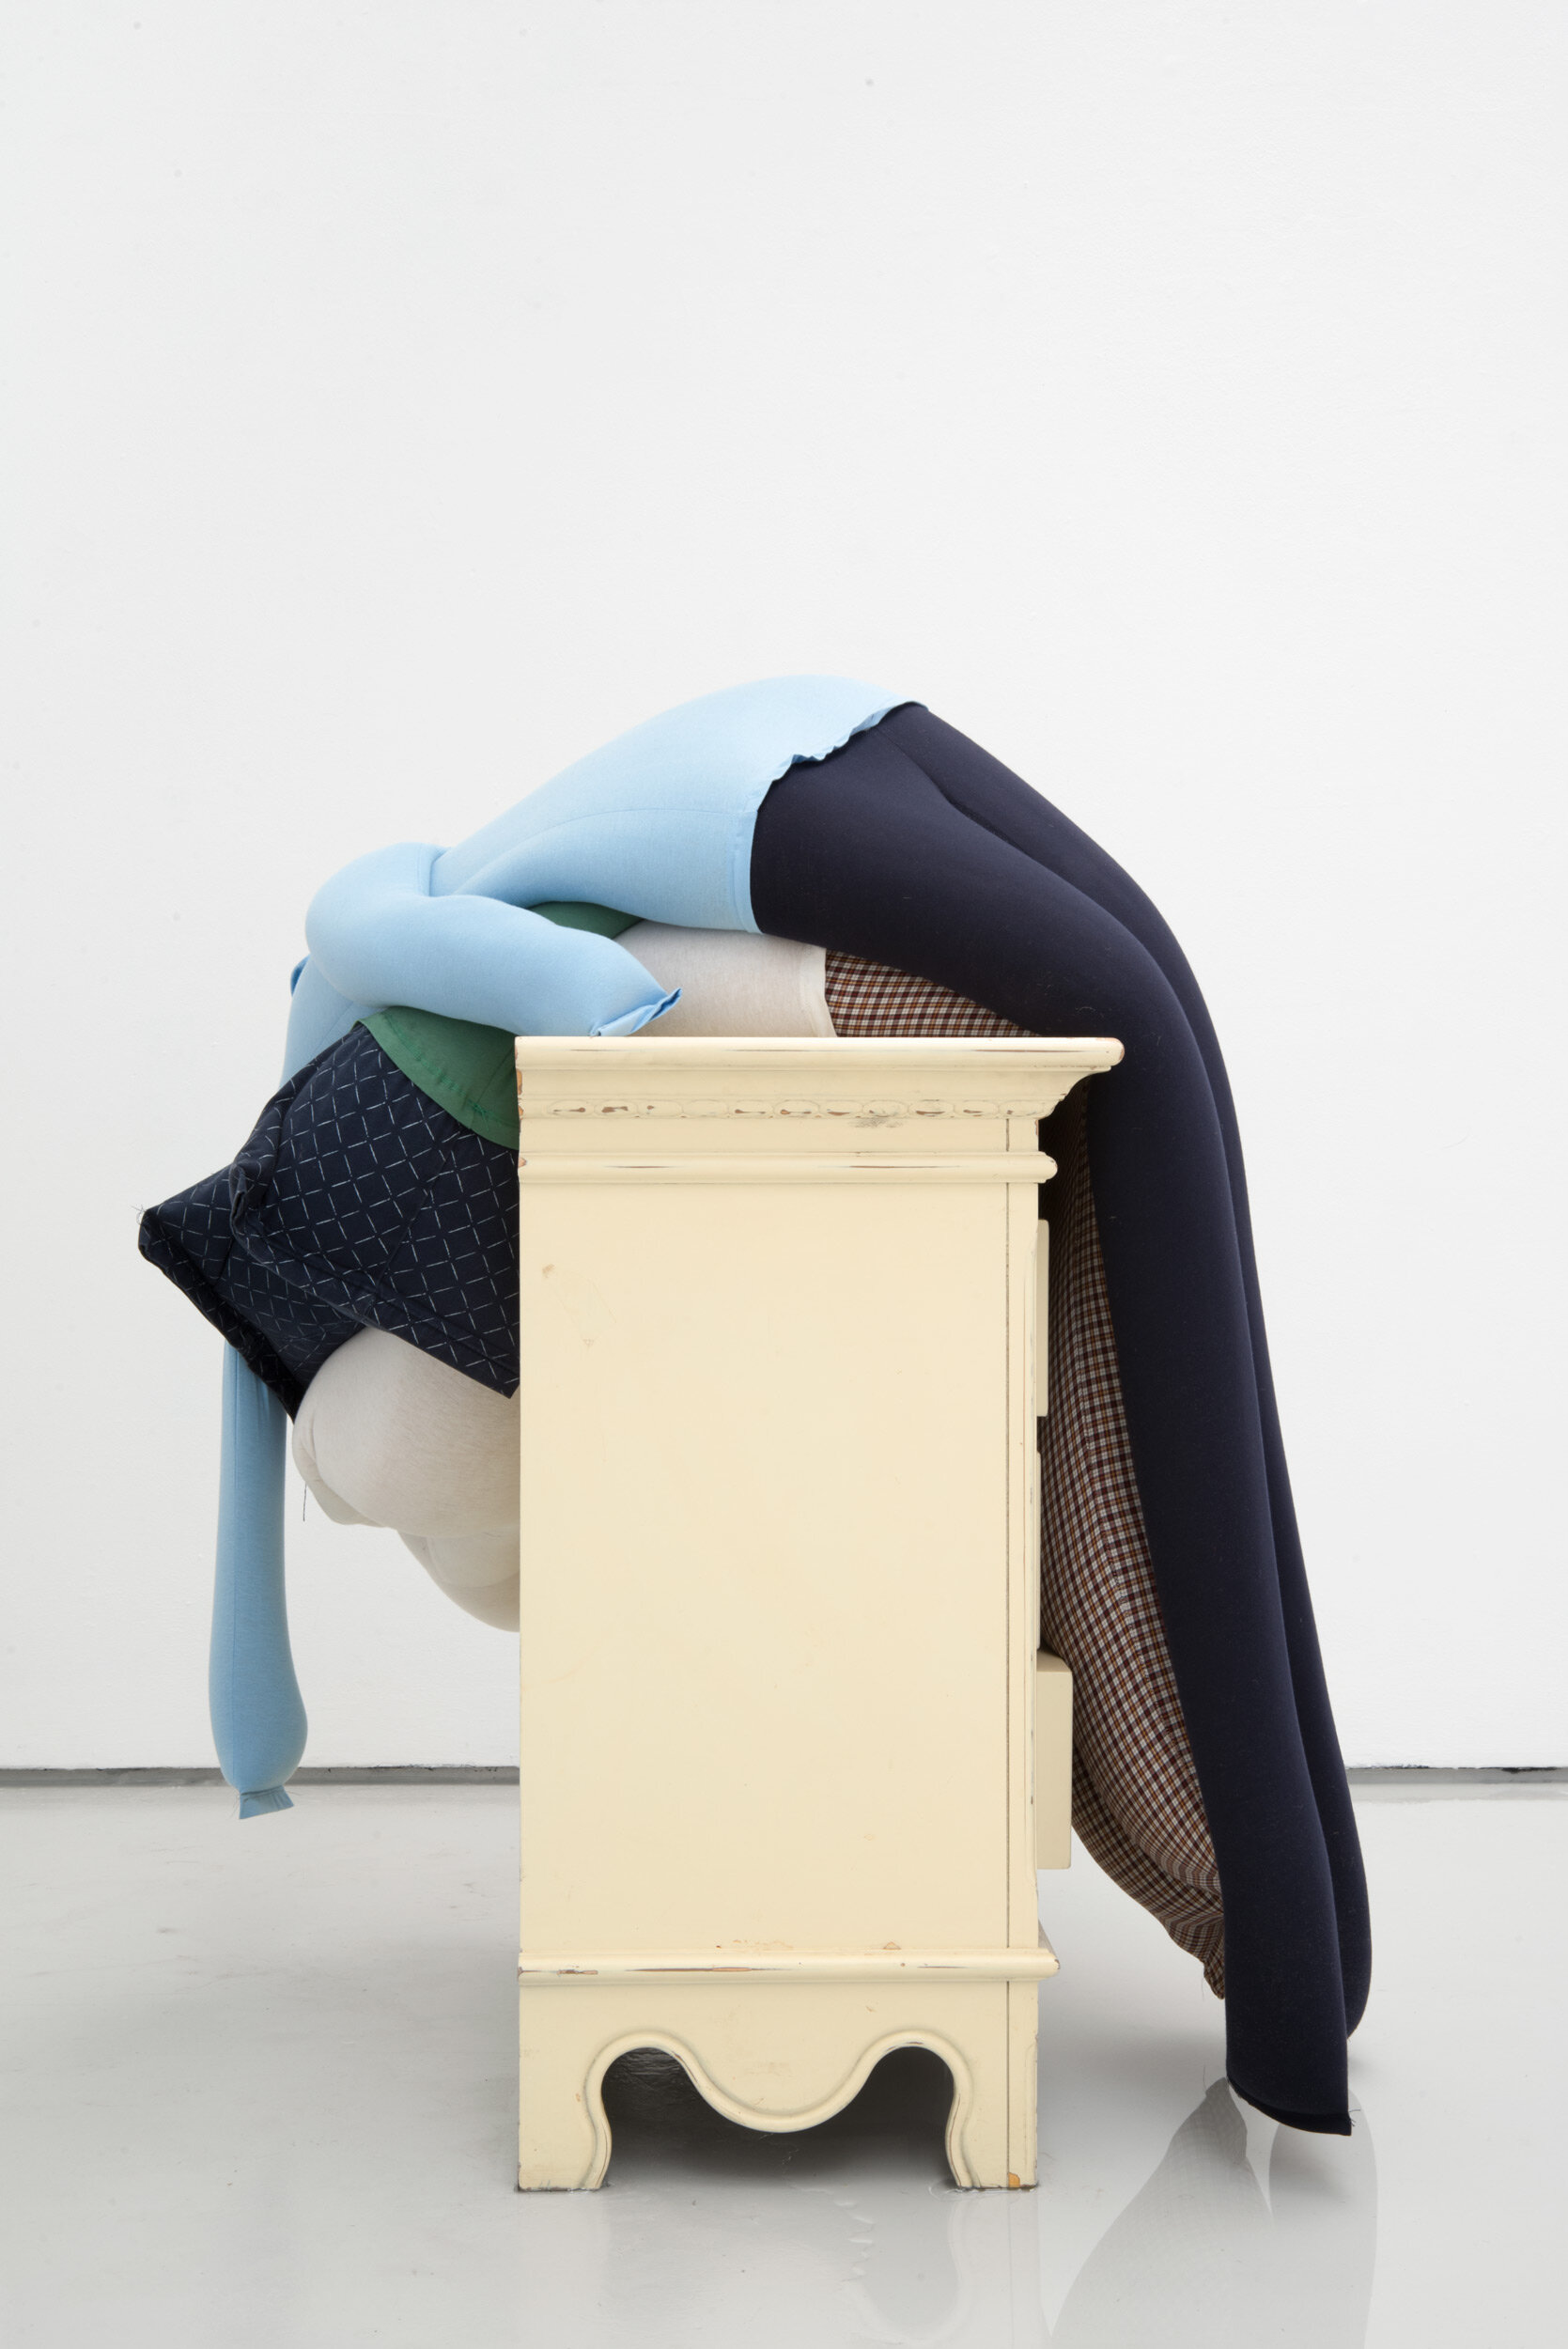 Dip, crash, flat on a chest of drawers partially in water, Alex Farrar, Bloc Projects, 2019, 1.jpg